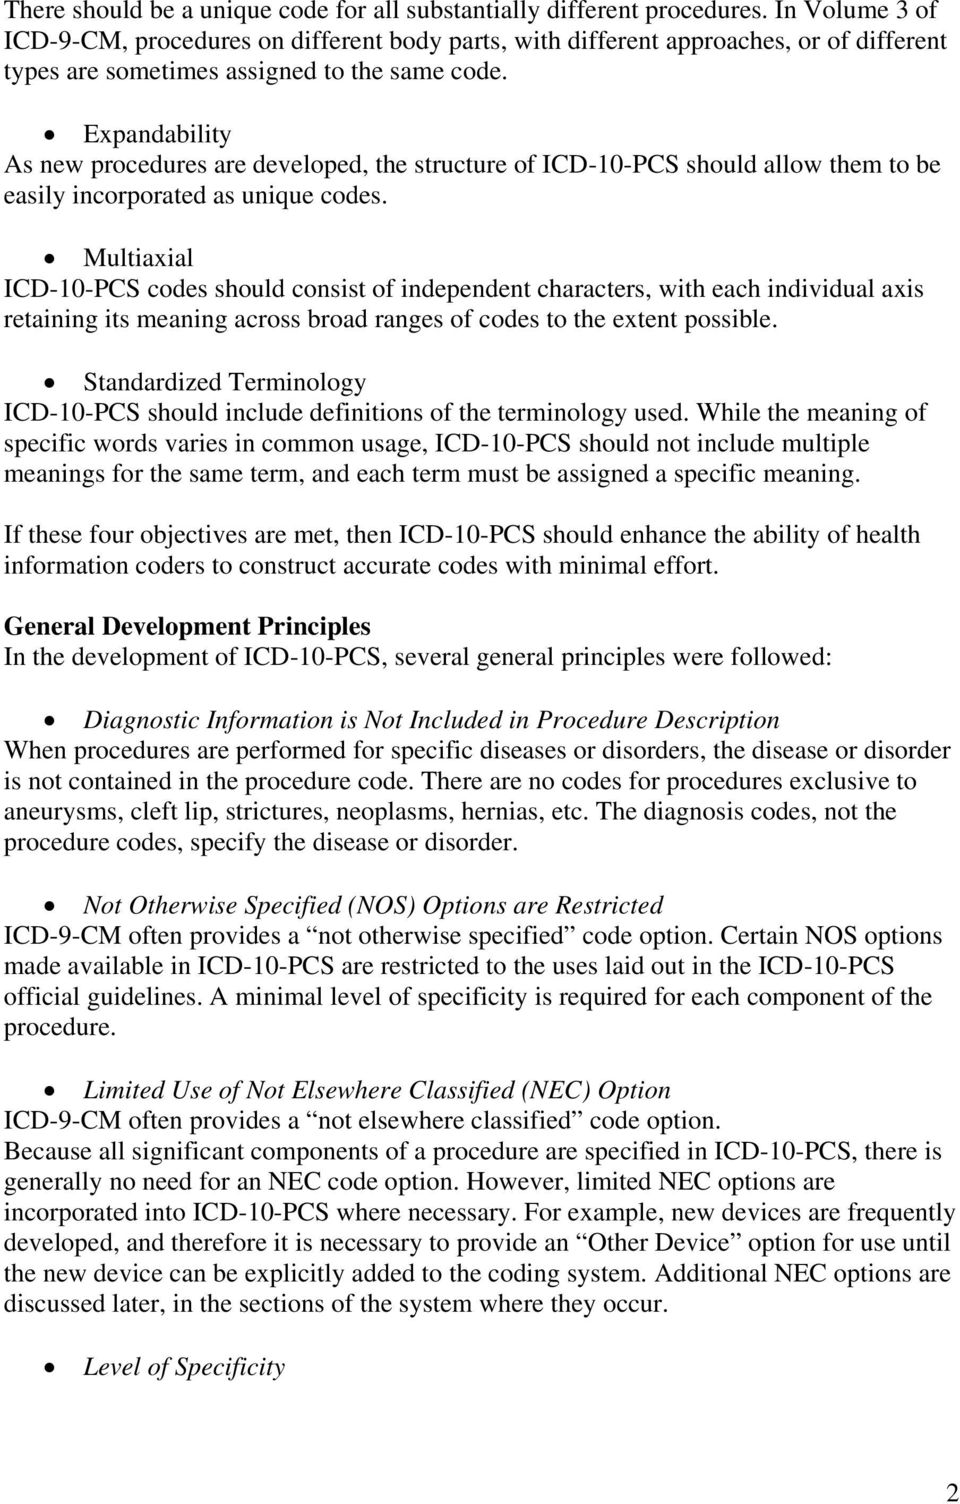 Development Of The Icd 10 Procedure Coding System Icd 10 Pcs Pdf